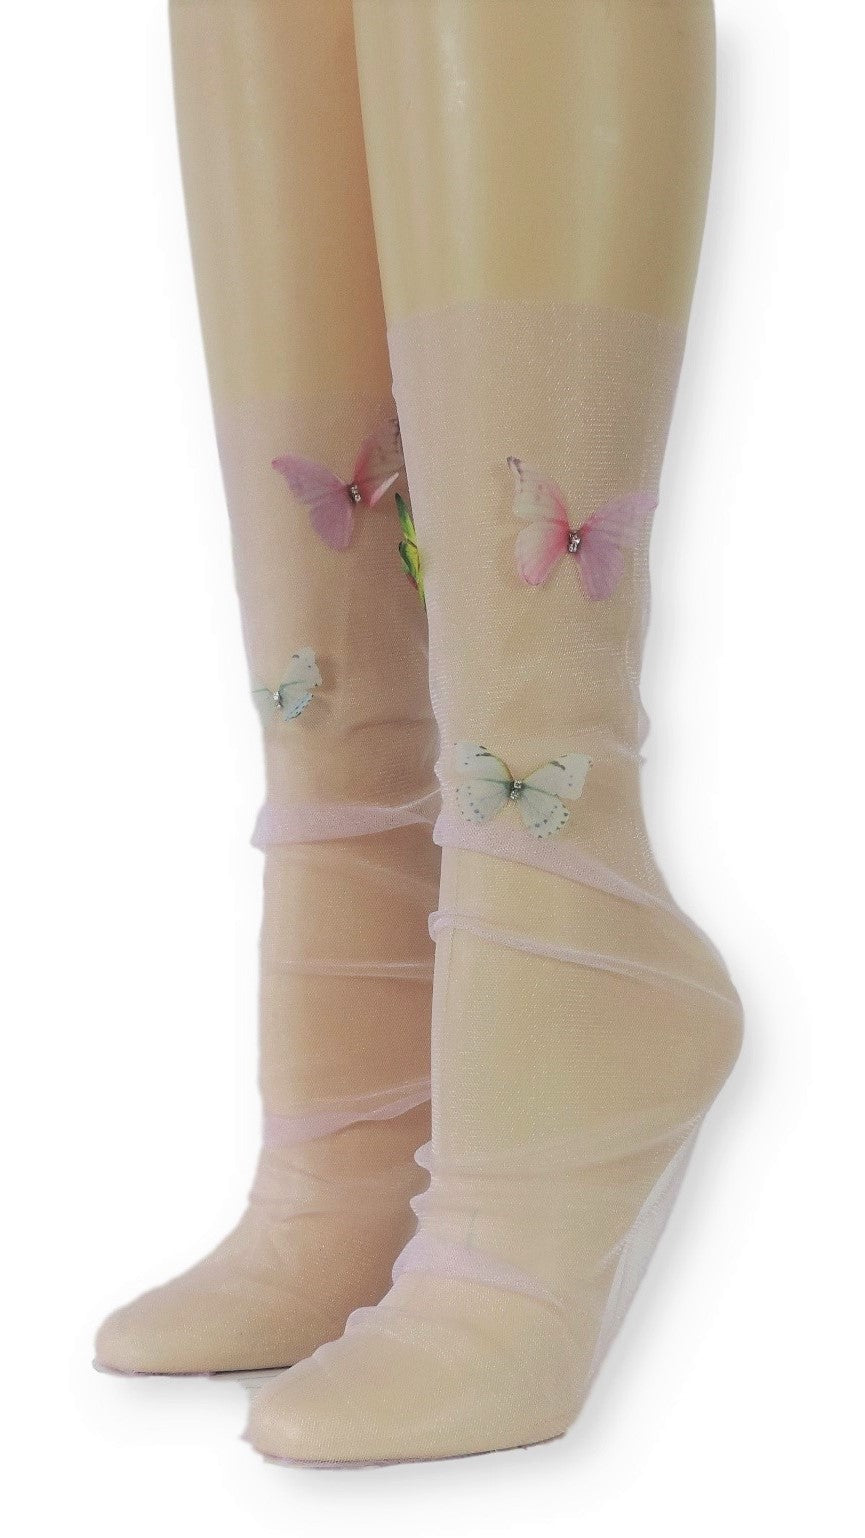 Lavender Tulle Socks with Butterflies